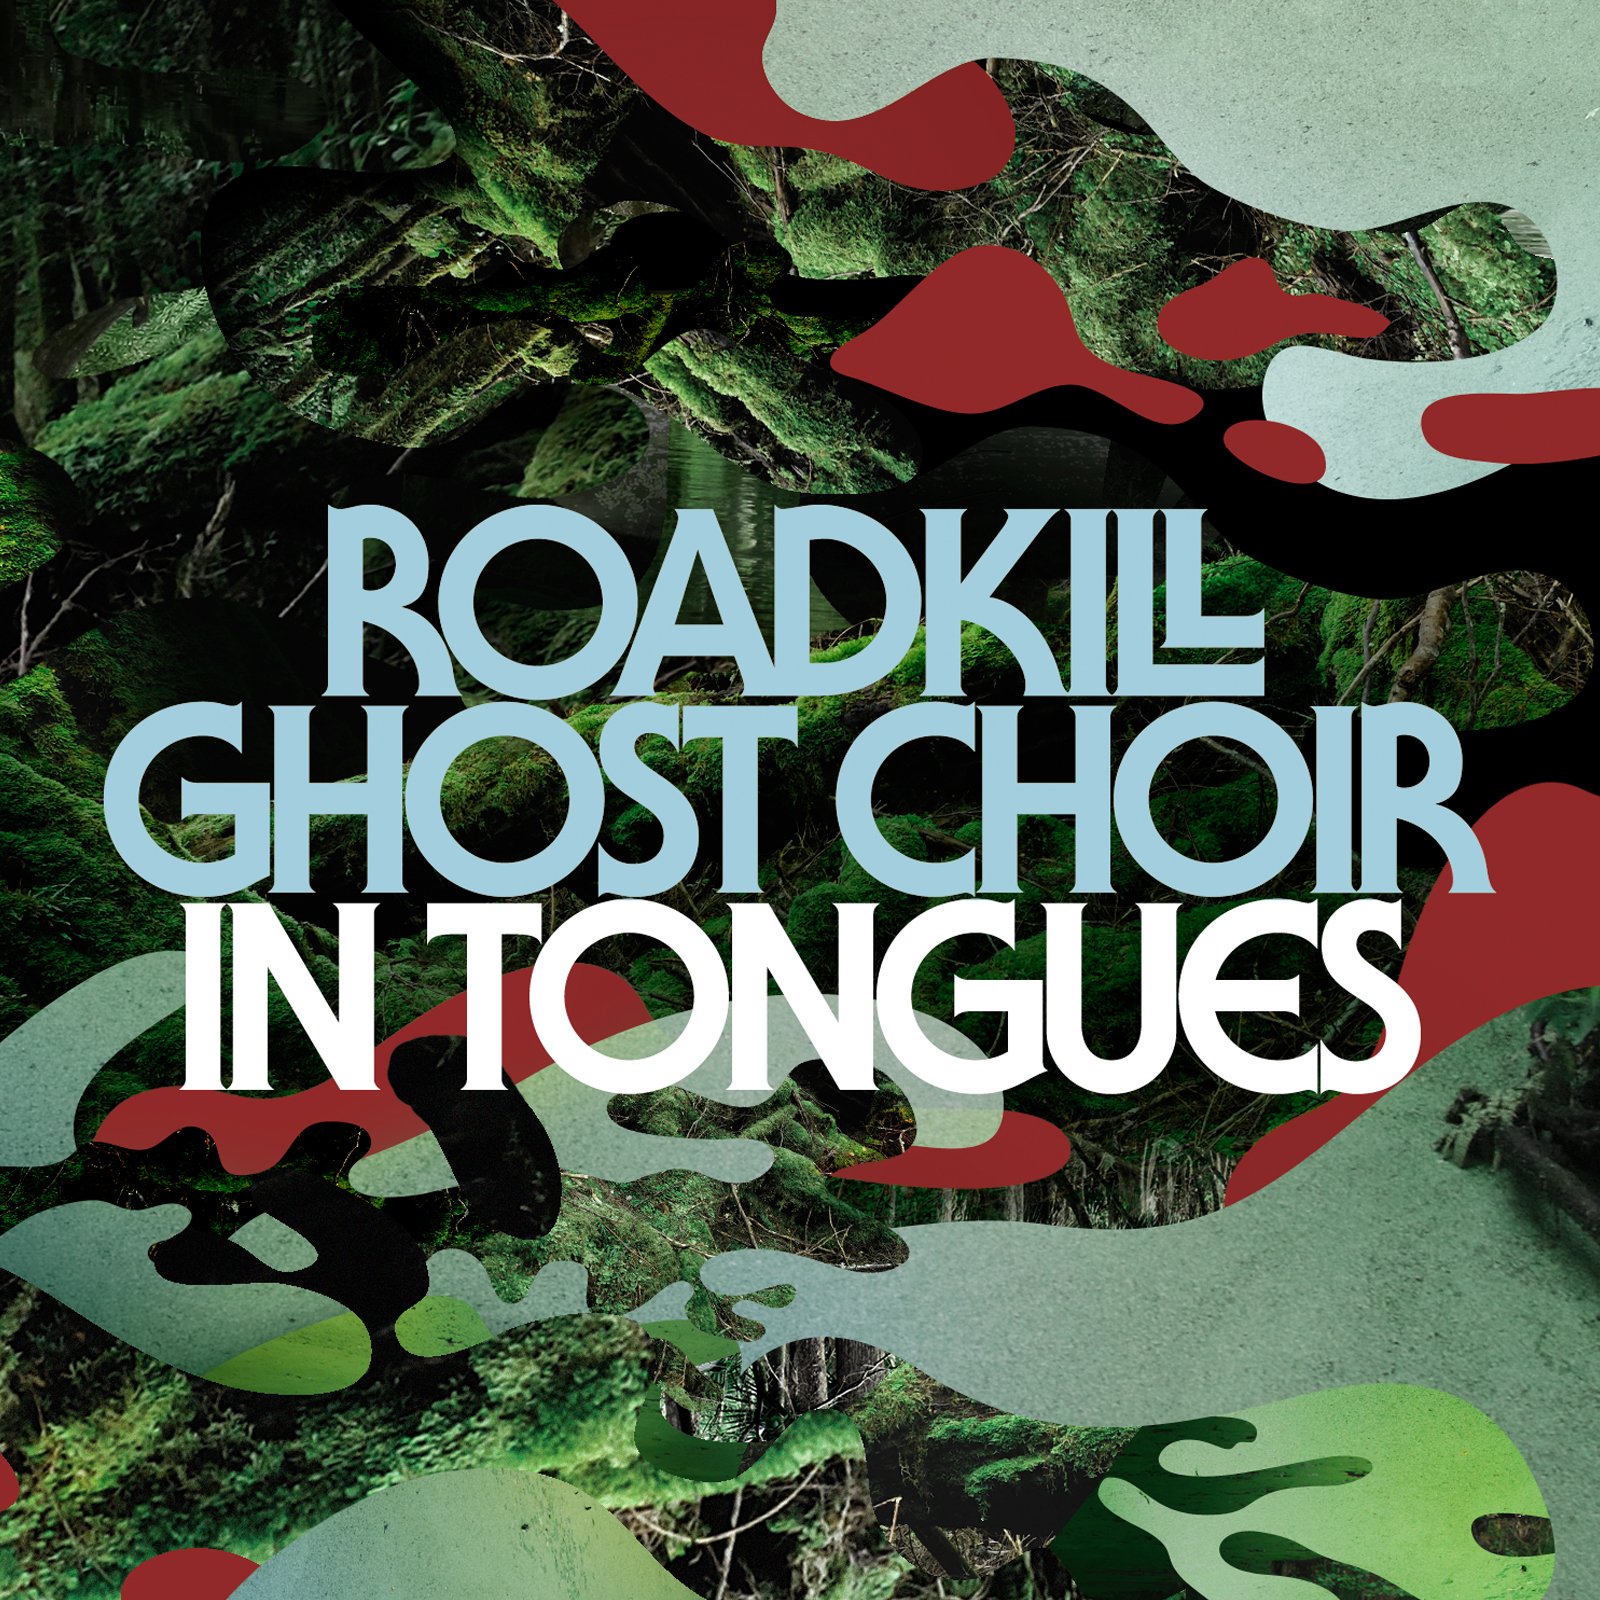 ROADKILL GHOST CHOIR  In Tongues   KEVIN: Buy It ANDRE: Buy It PAUL: Buy It ADAM: Buy It CARRIE: Buy It